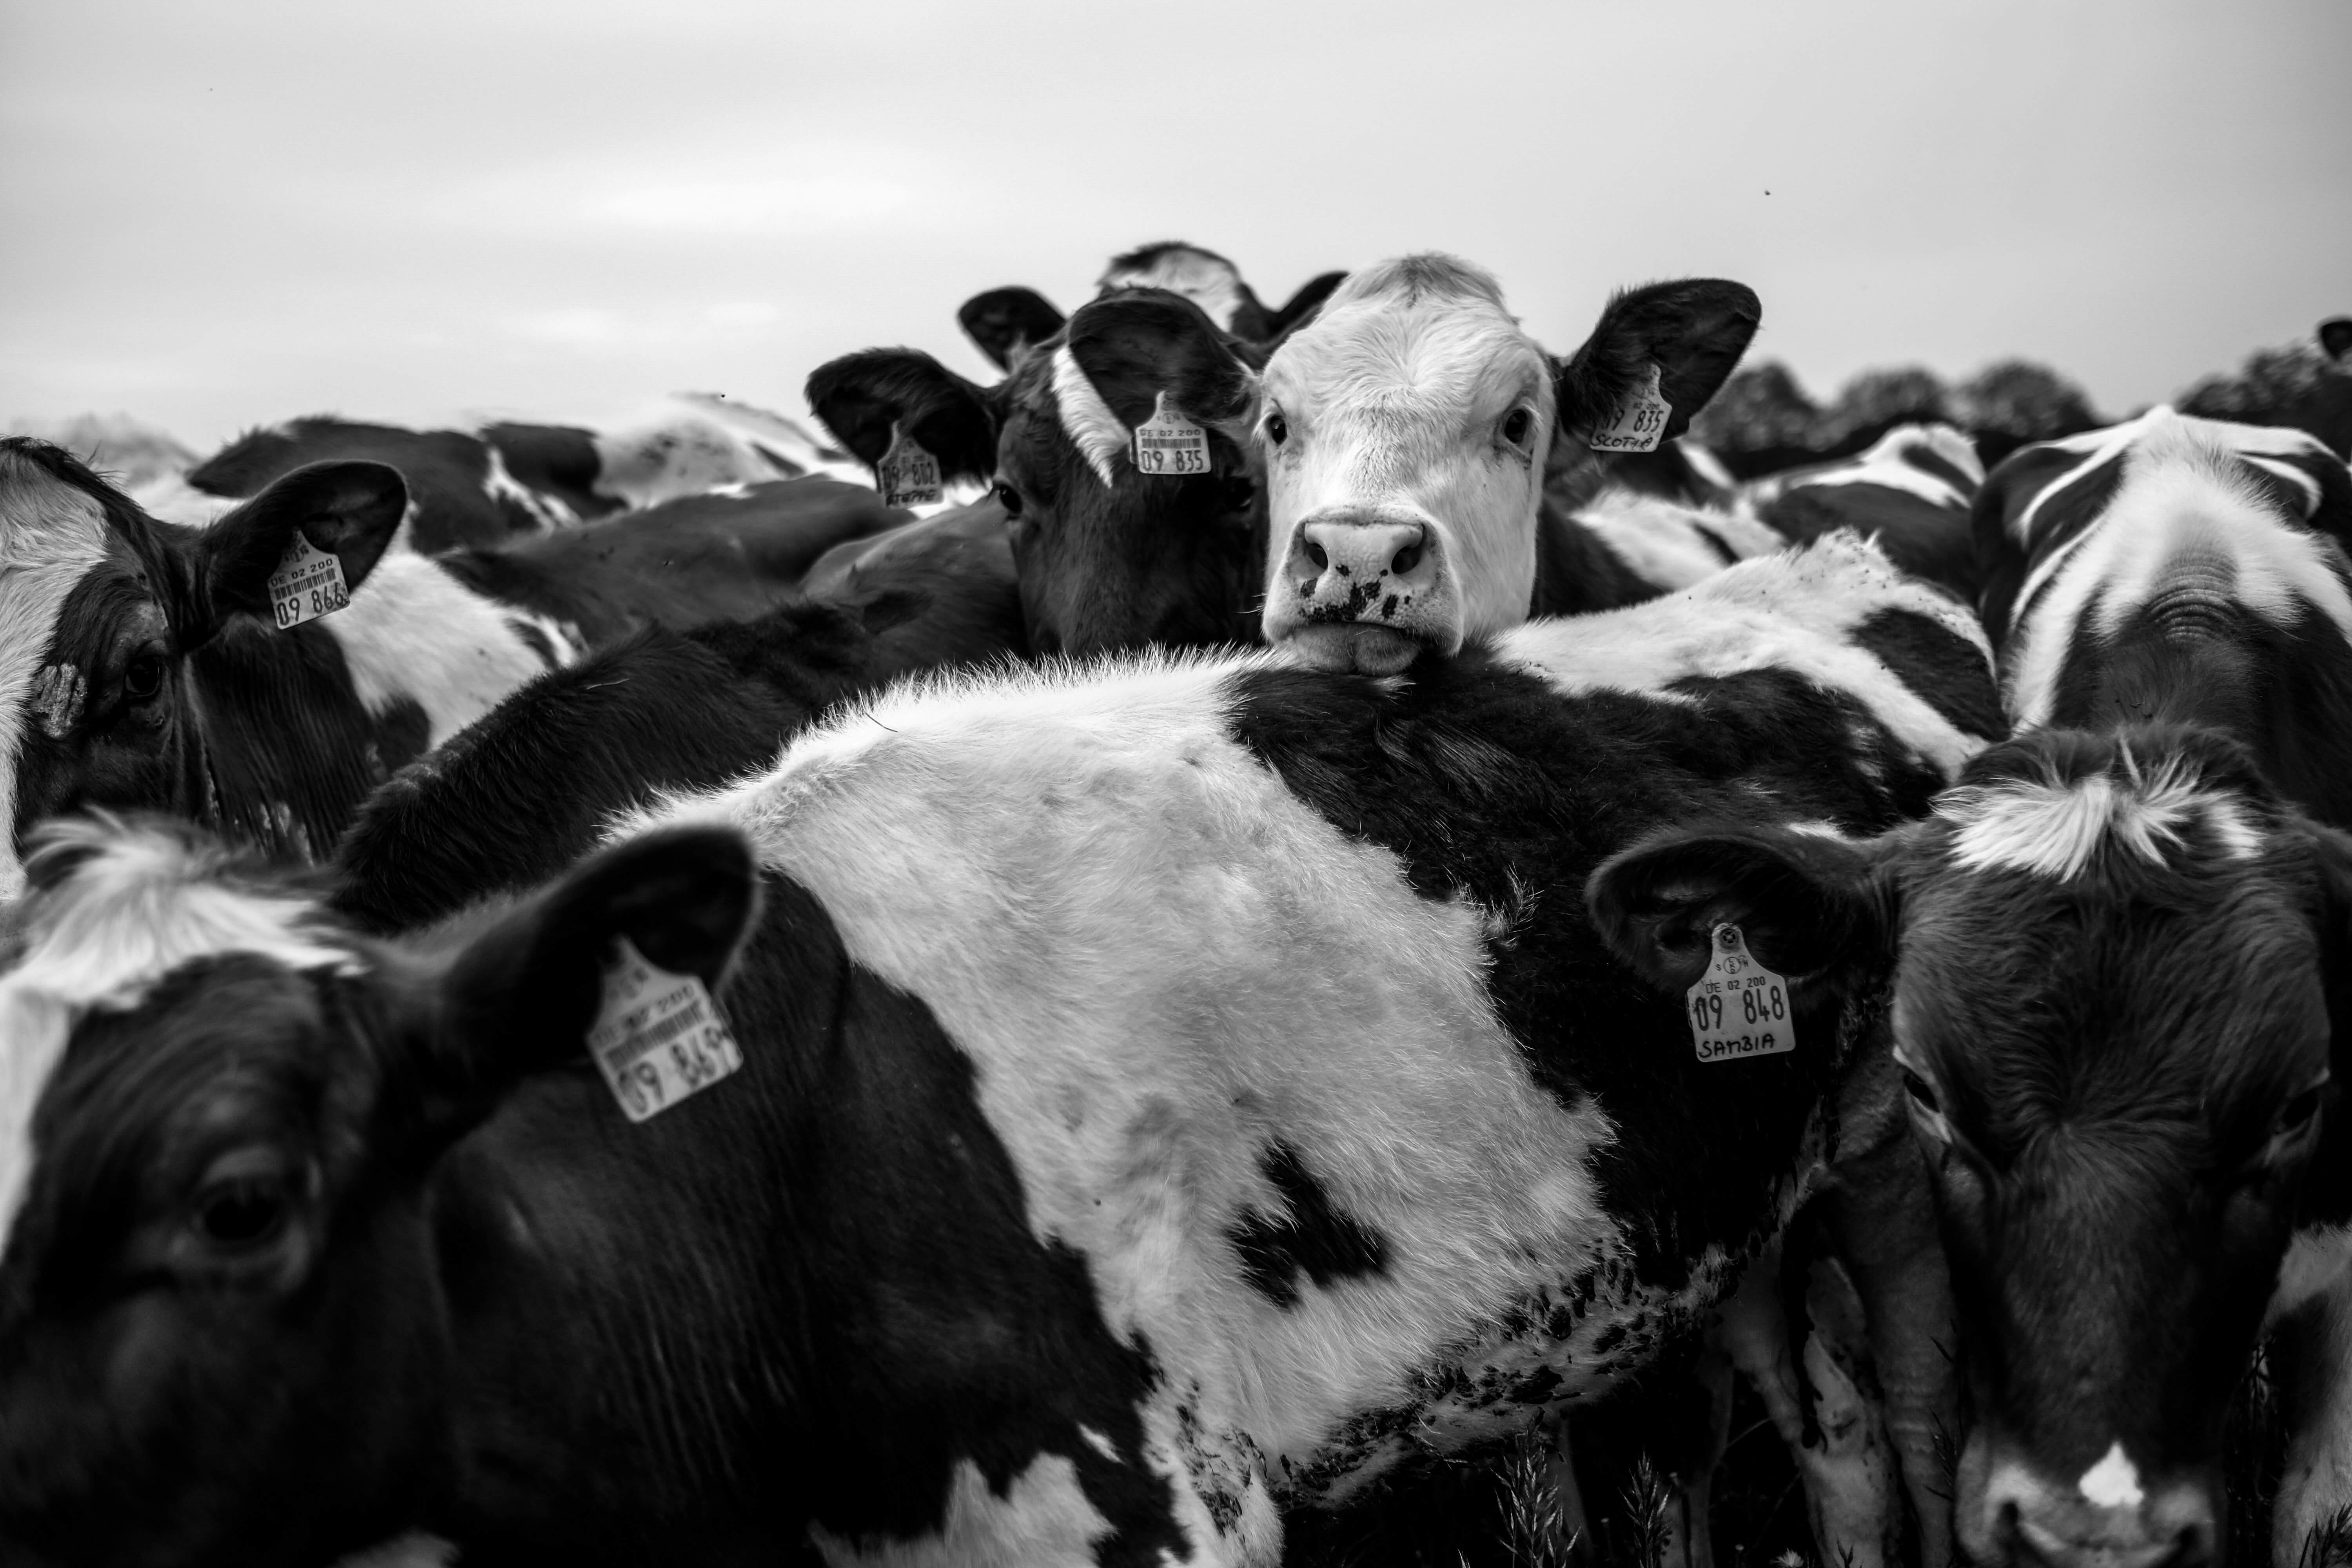 Cows for leather